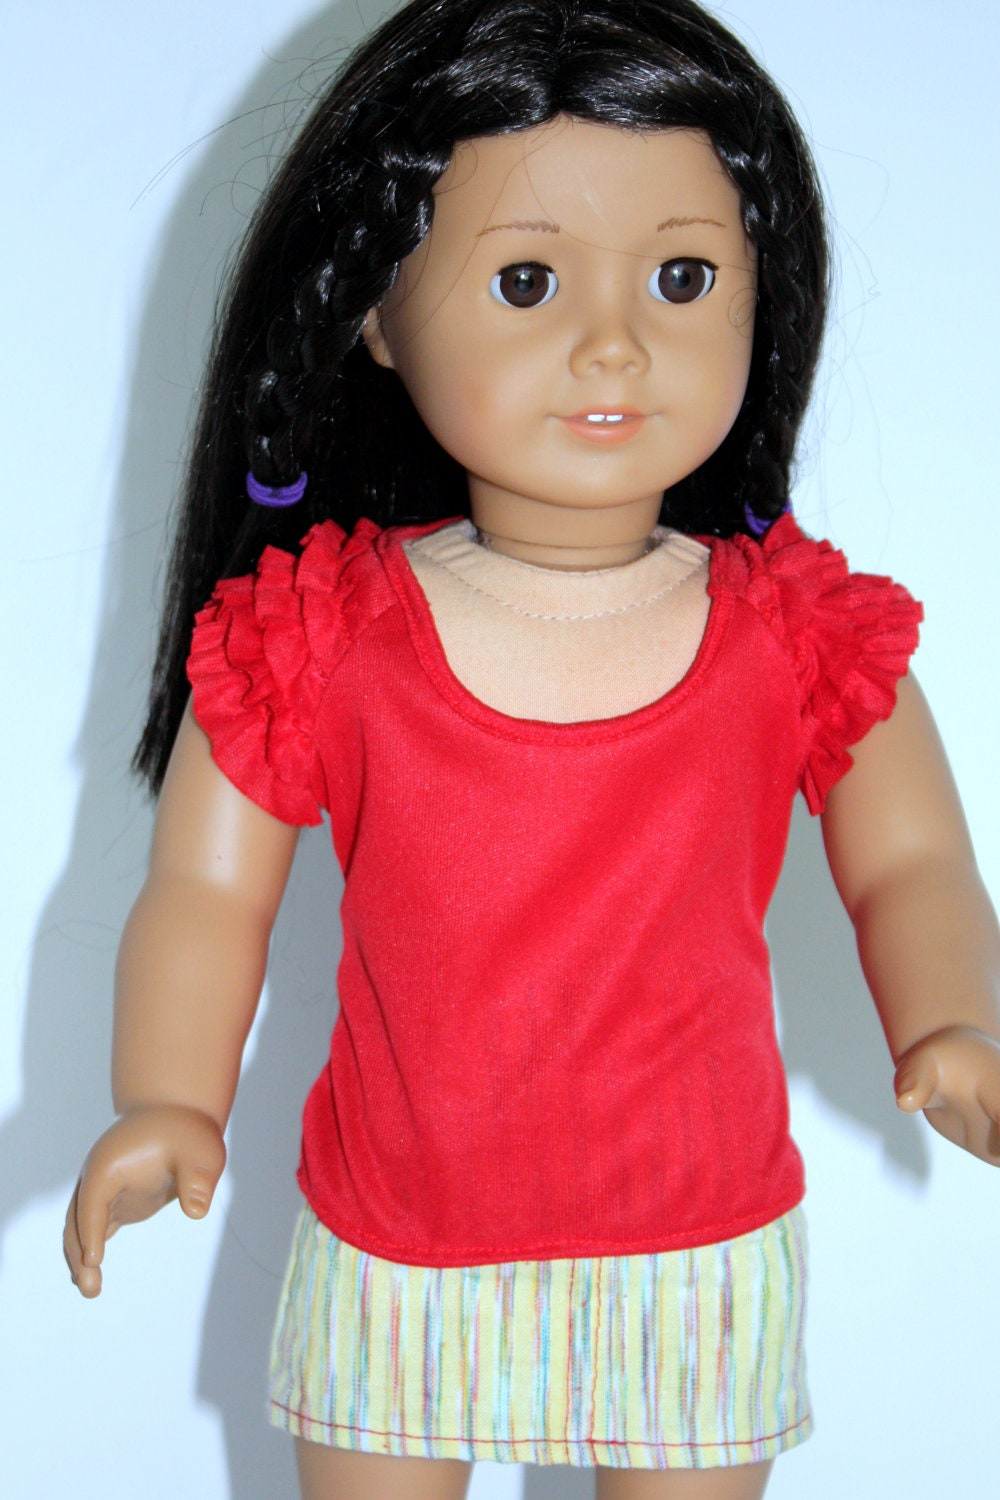 American Girl Doll Red Ruffle Sleeve Knit Top and Yeloow Stripe Mini Skirt Tan Sandals - JessieAmerica